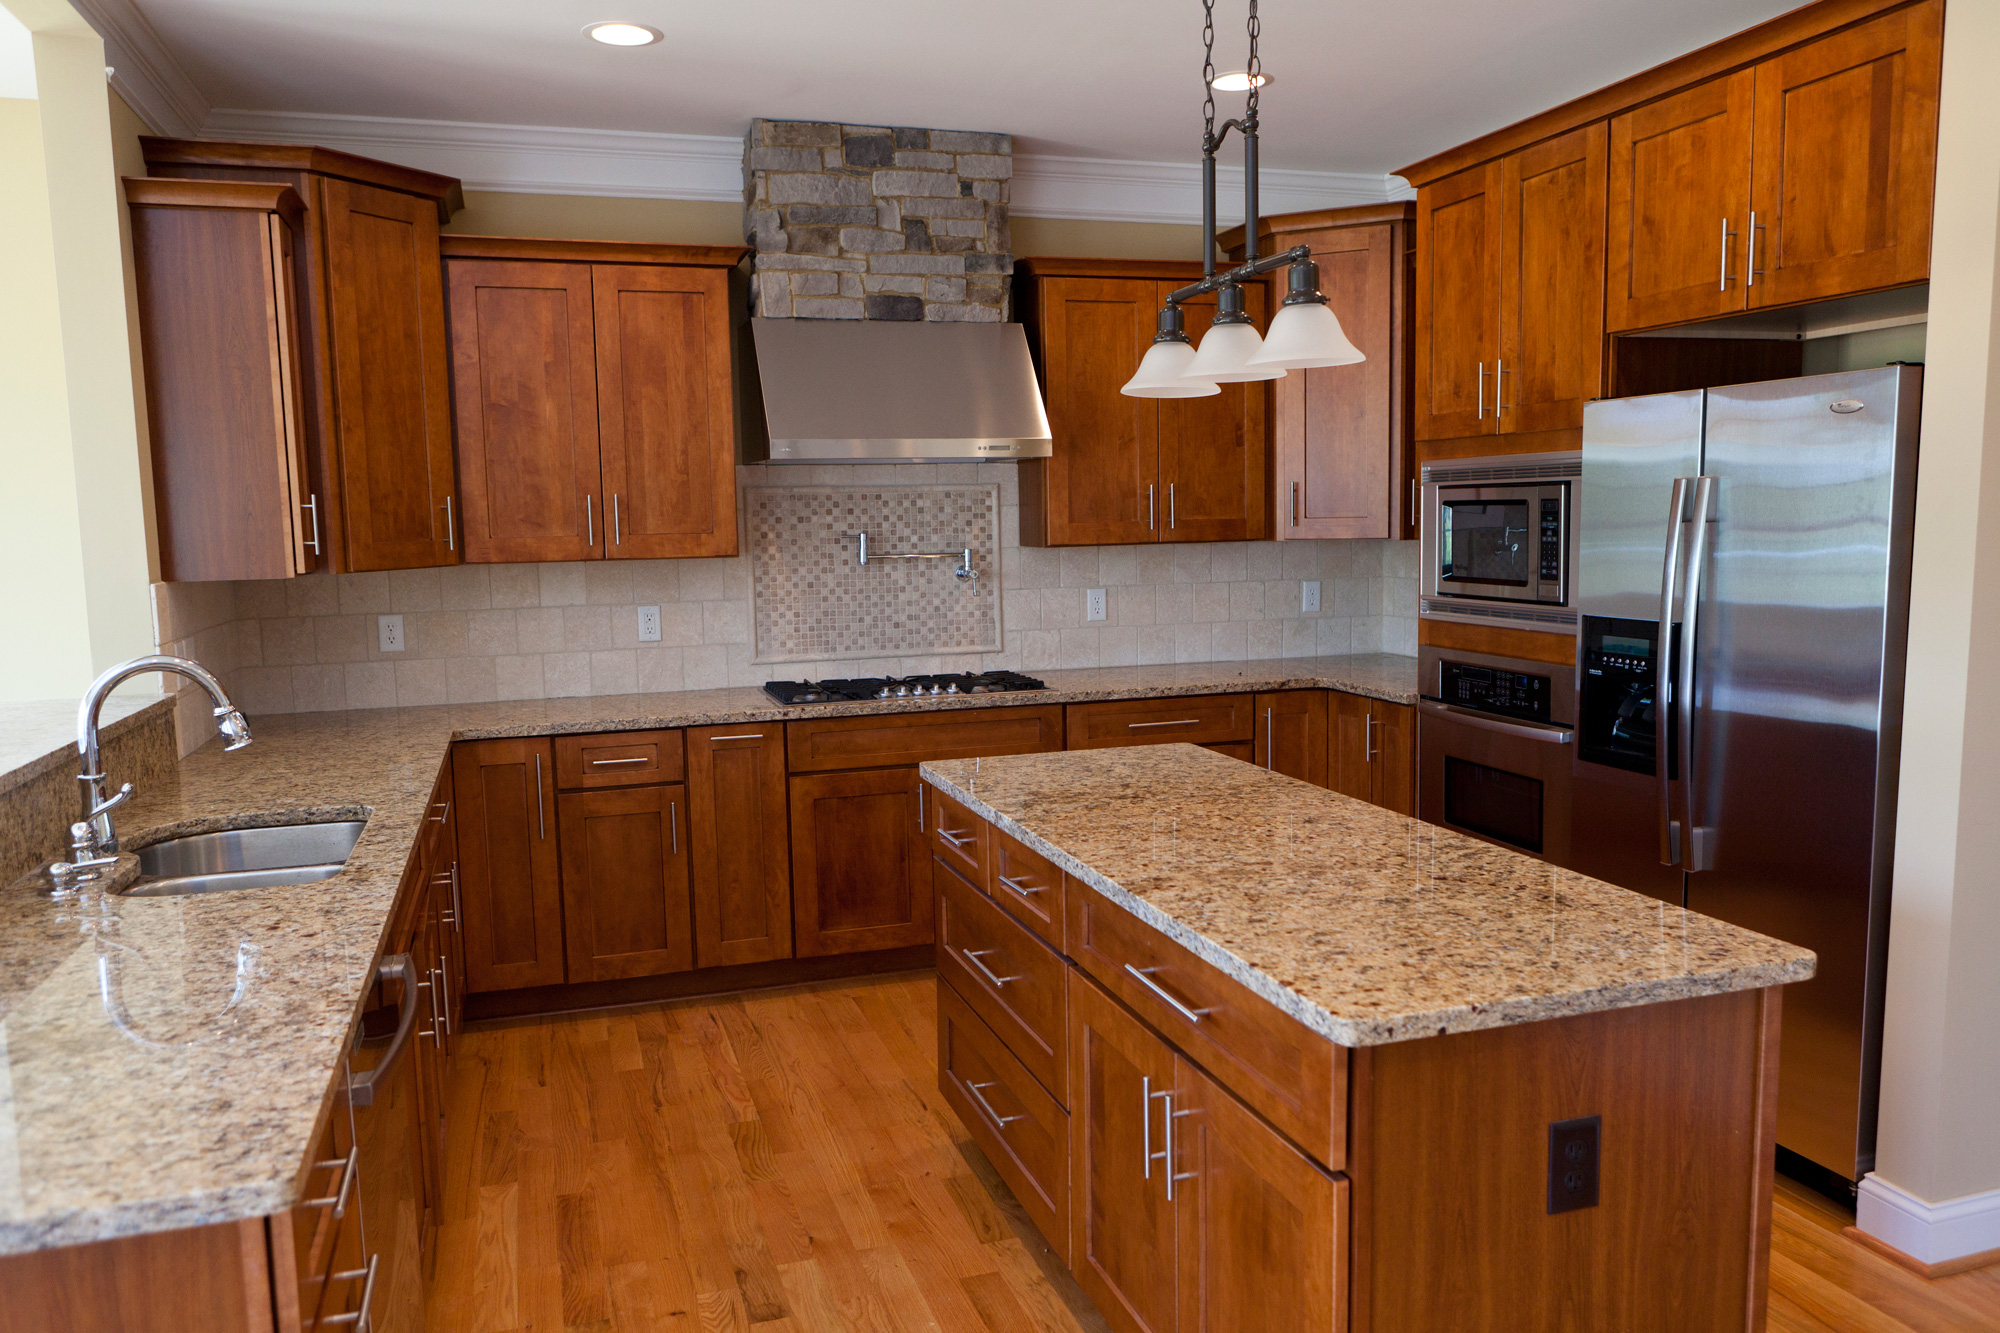 East palo alto contractor and home remodel company for Kitchen renovation images